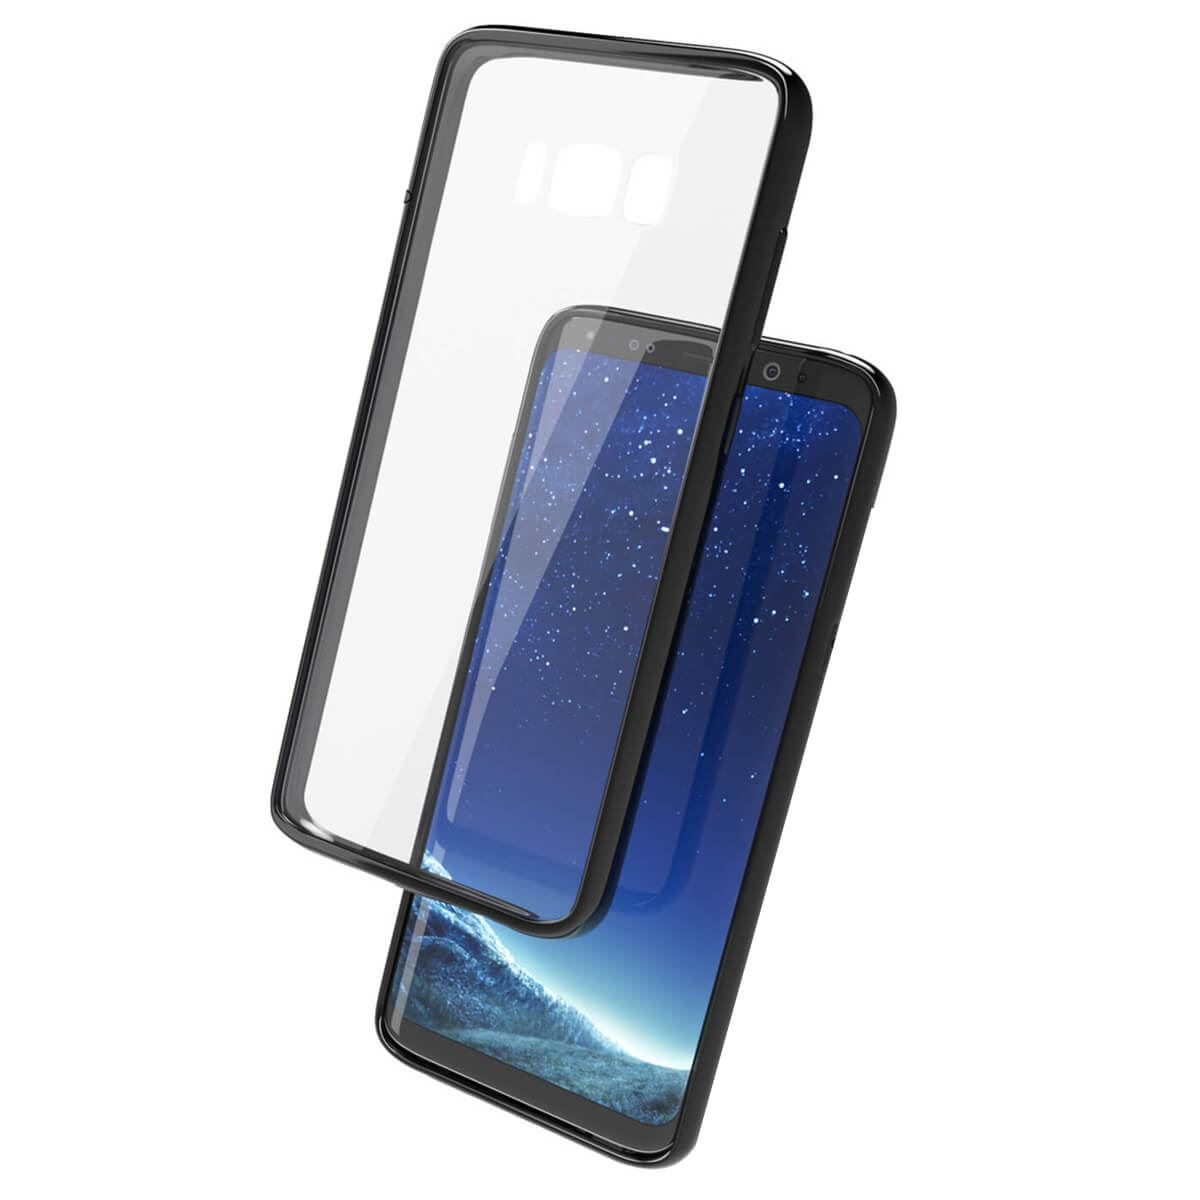 Shockproof-TPU-Bumper-Case-Samsung-Galaxy-S8-Plus-Note-8-Gel-Crystal-Clear-Cover thumbnail 12